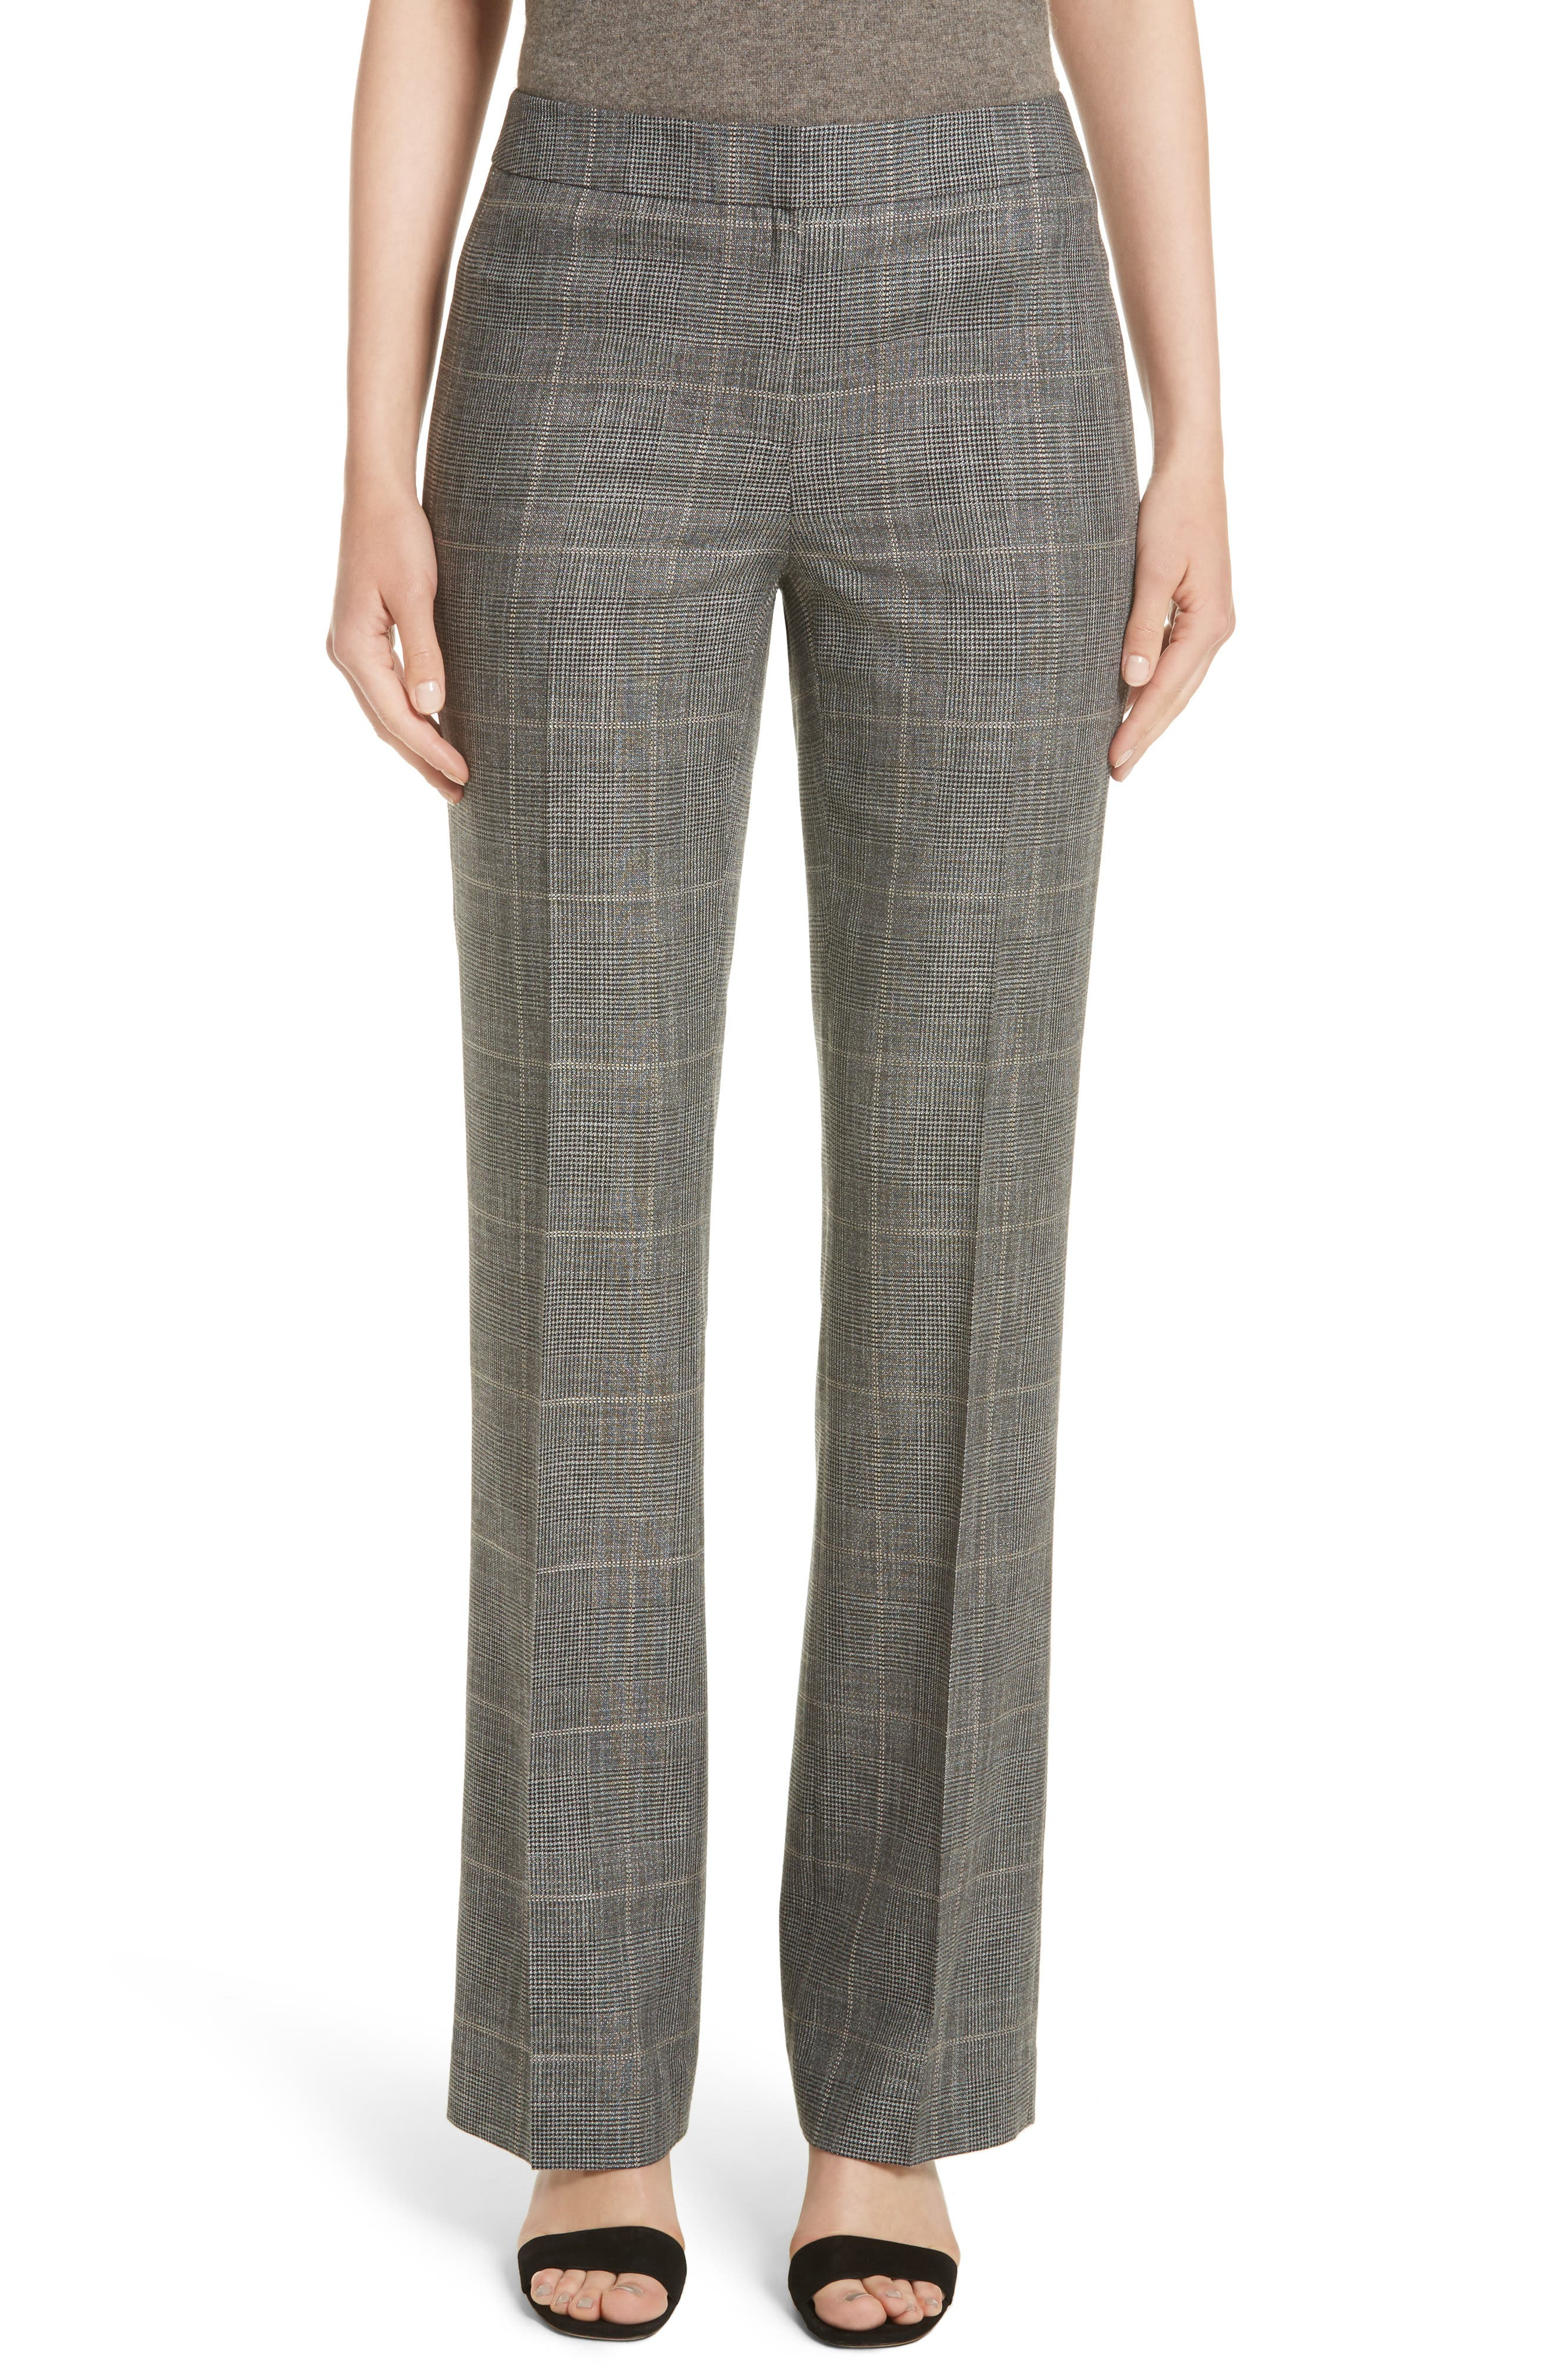 Lafayette 148 New York Antico Plaid Menswear Pants (Nordstrom Exclusive)